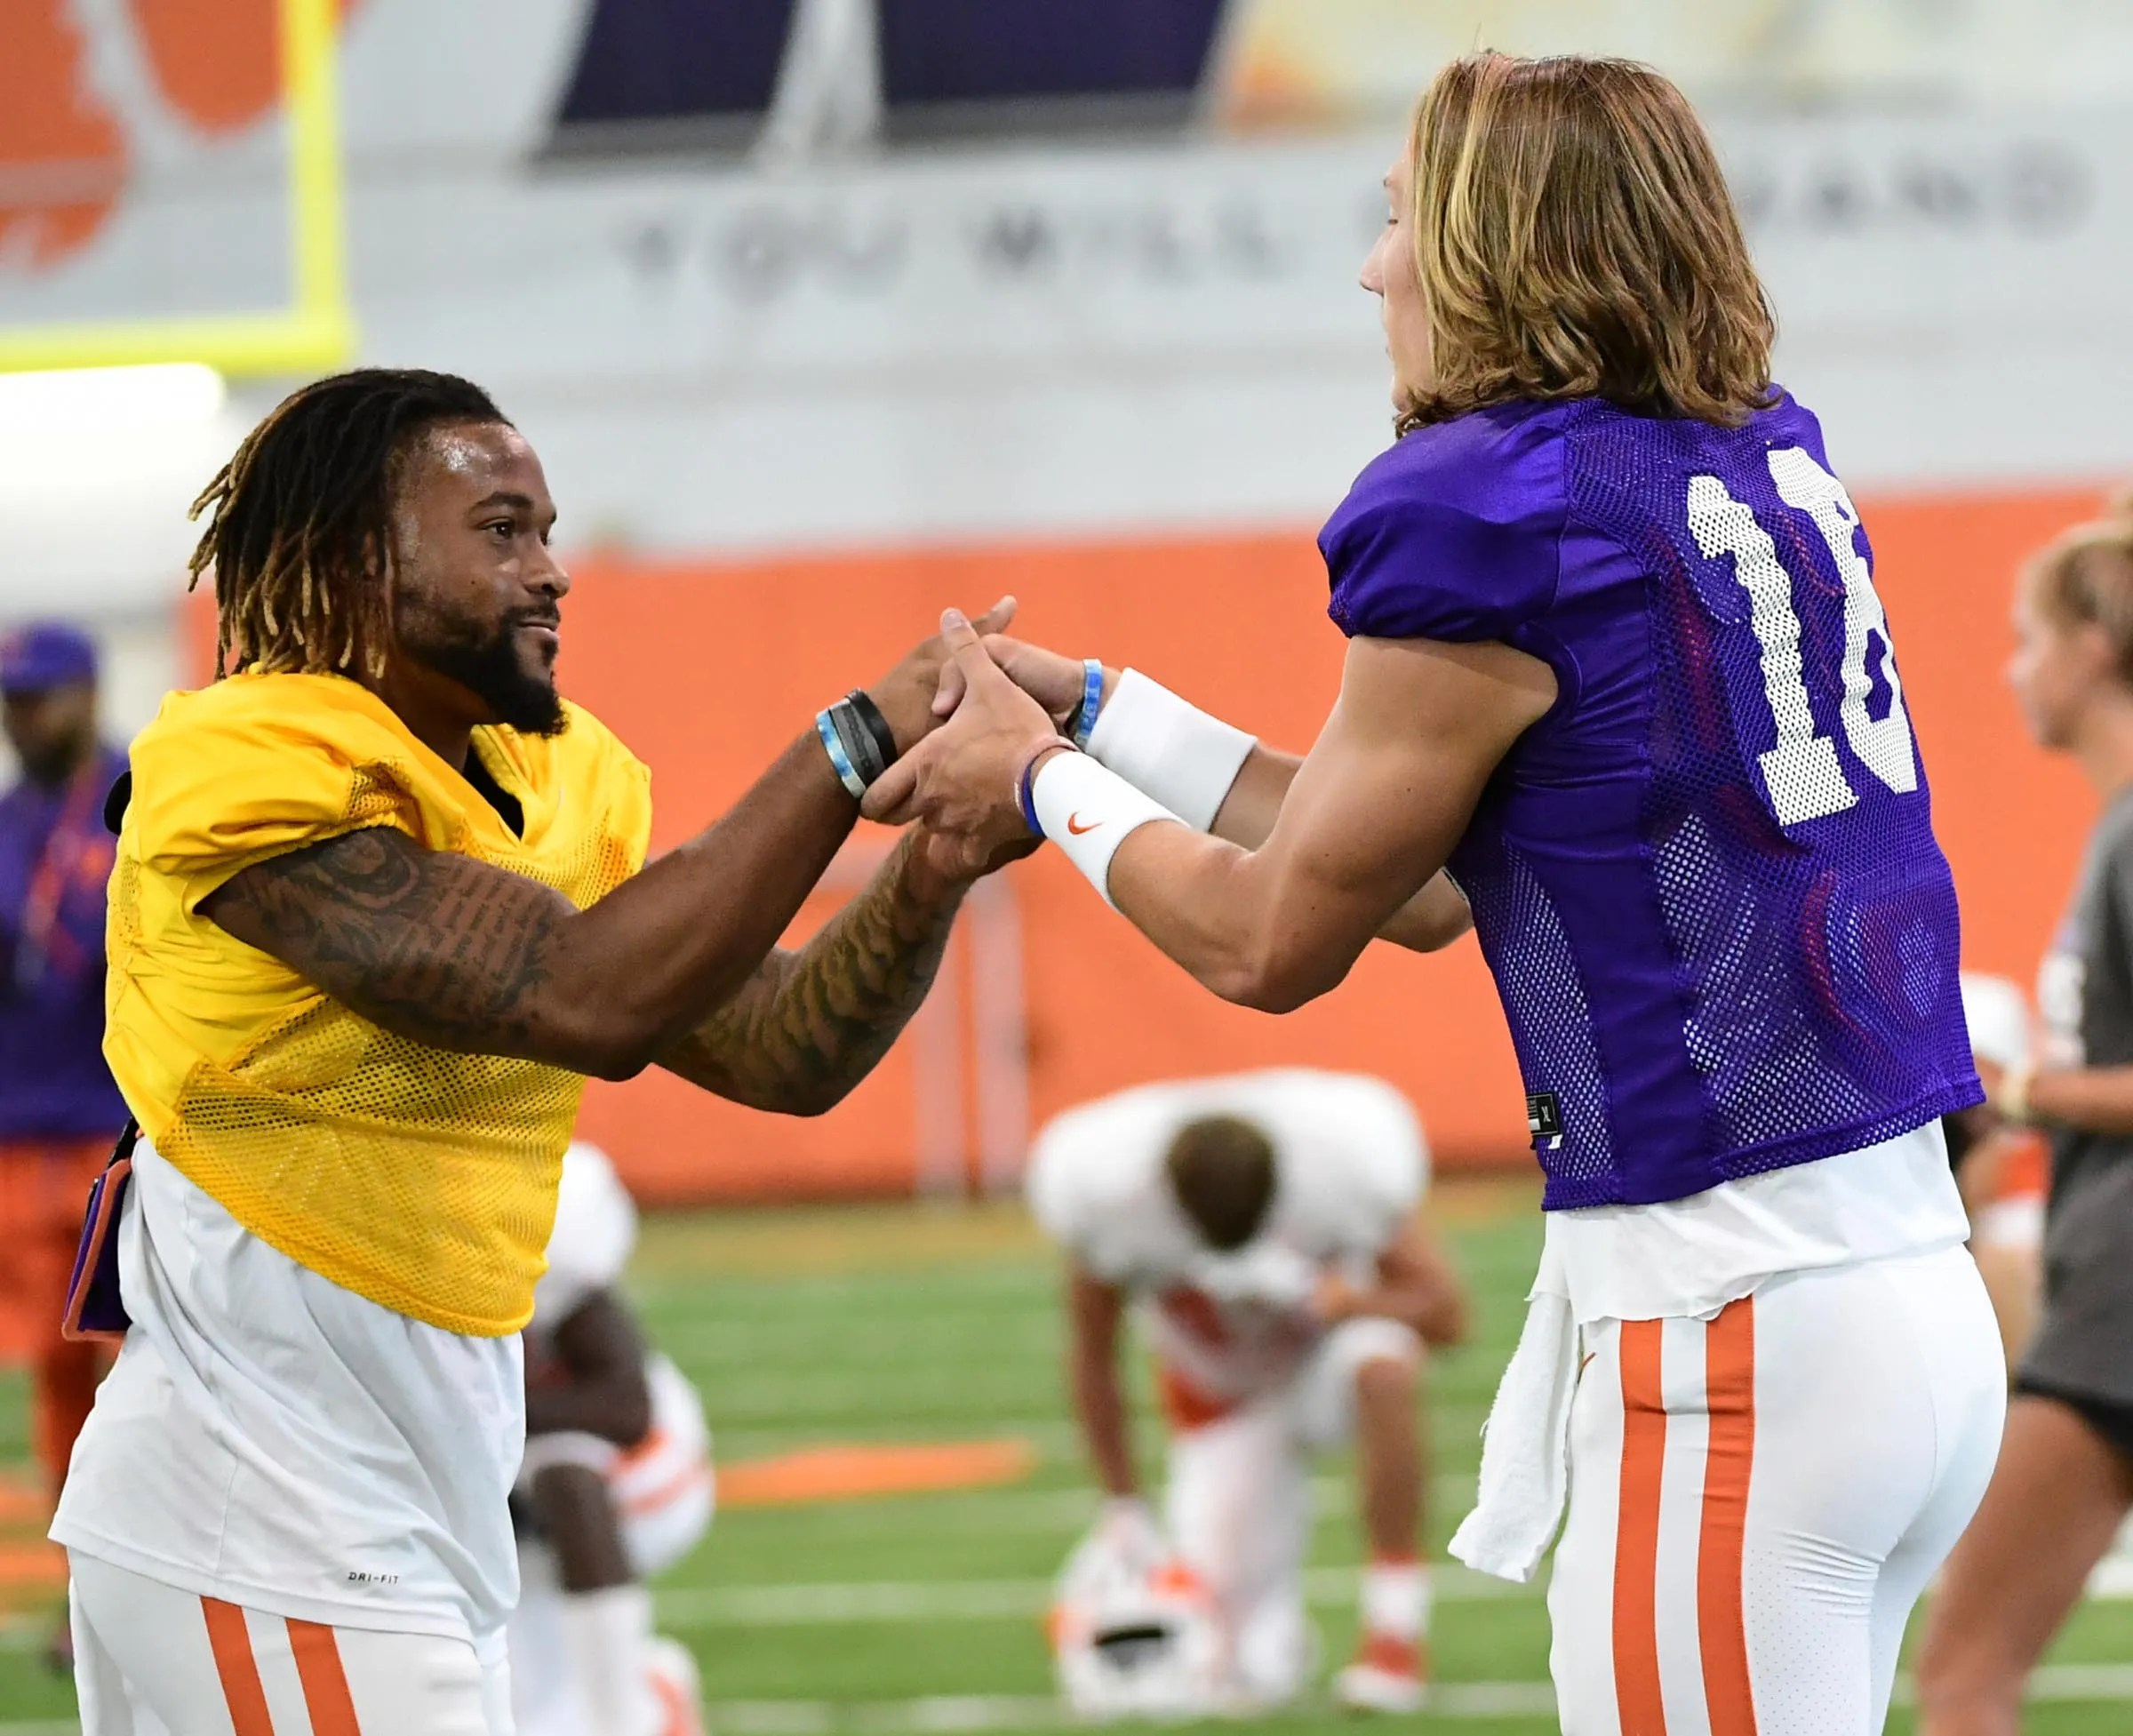 Clemson wide receiver Amari Rodgers (3) greets quarterback Trevor Lawrence (16) during practice at the Poe Indoor Facility in Clemson on Tuesday August 20, 2019.